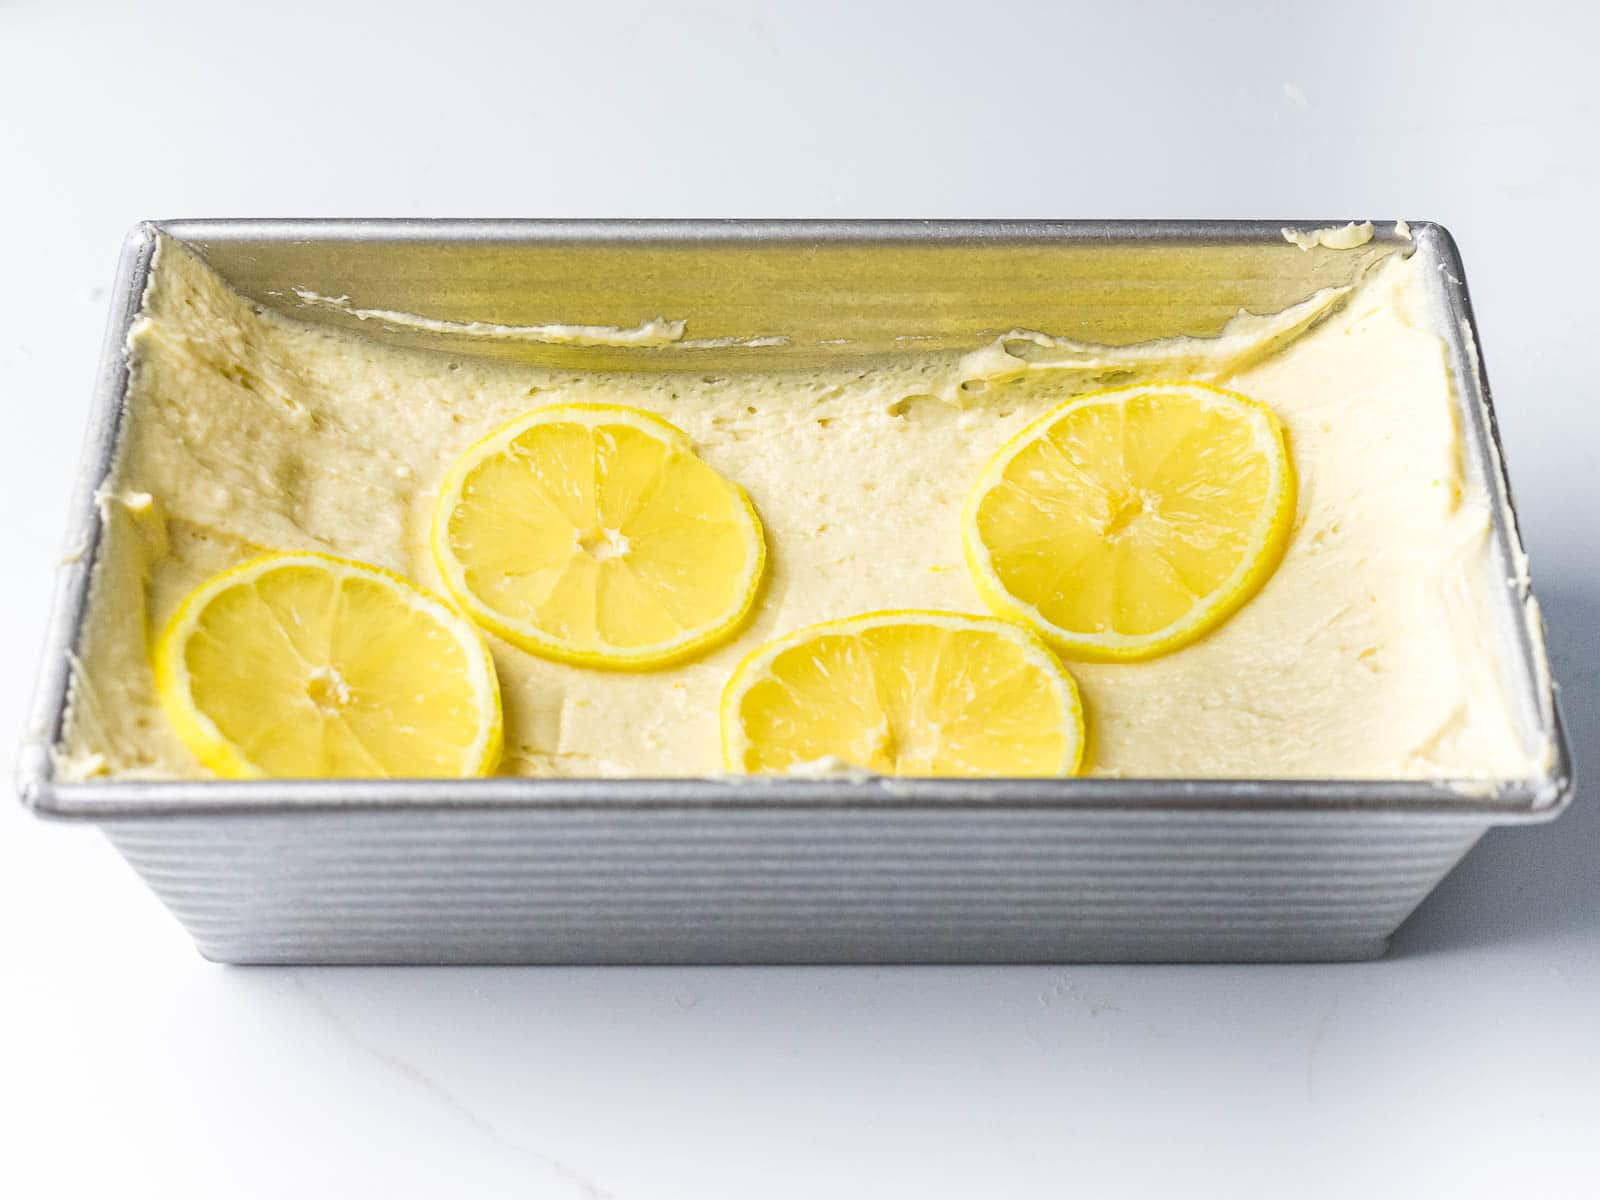 pound cake batter made into a well topped with thin lemon slices in a metal loaf pan